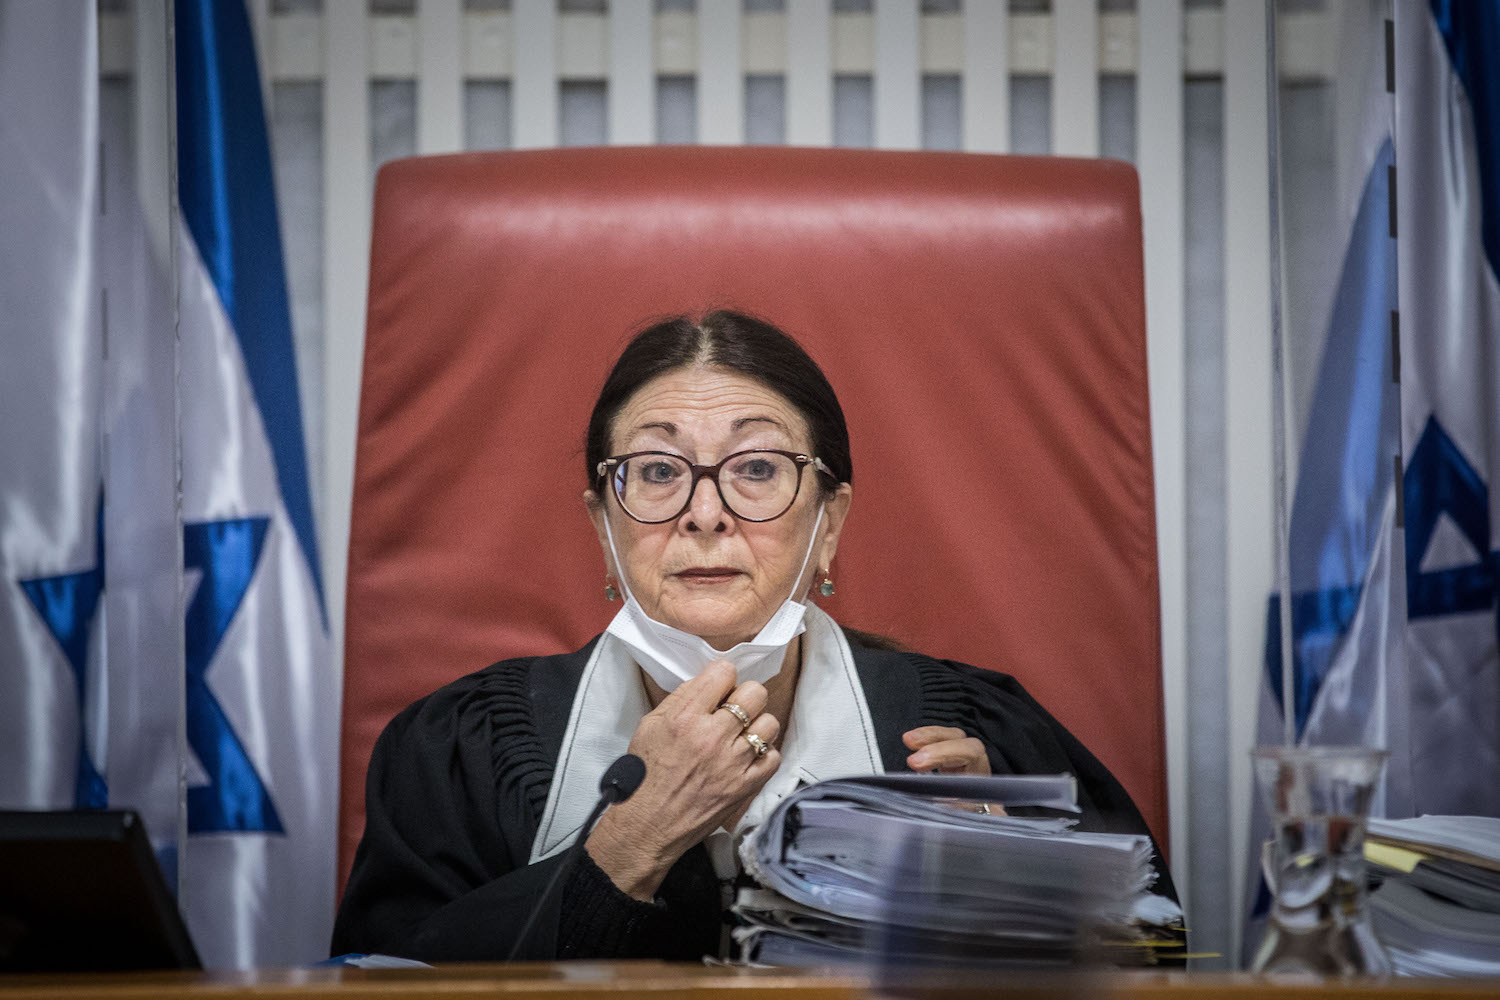 President of the Israeli Supreme Court Esther Hayut seen during a hearing on petitions against the Jewish Nation-State Law, Jerusalem, December 22, 2020. (Yonatan Sindel/Flash90)